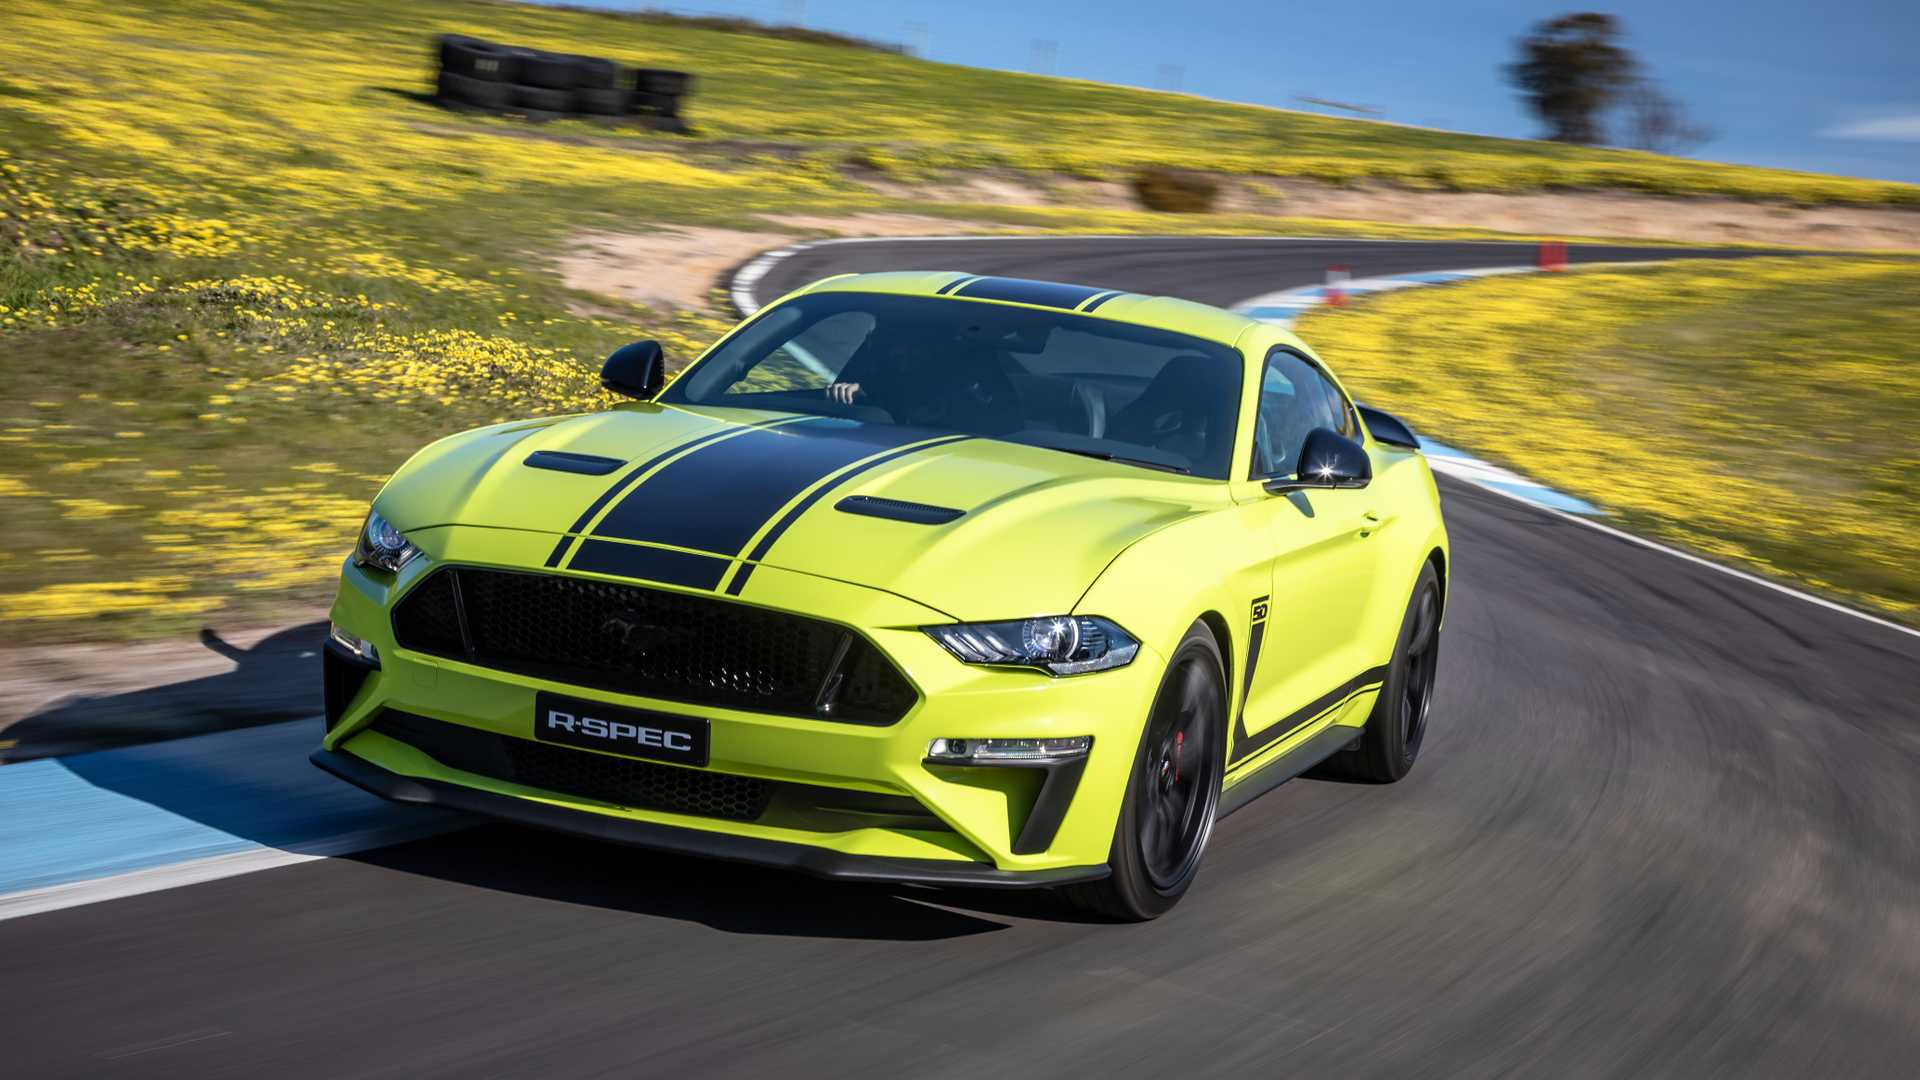 2020 Ford Mustang R-Spec (Color: Grabber Lime) Front Three-Quarter Wallpapers (5)